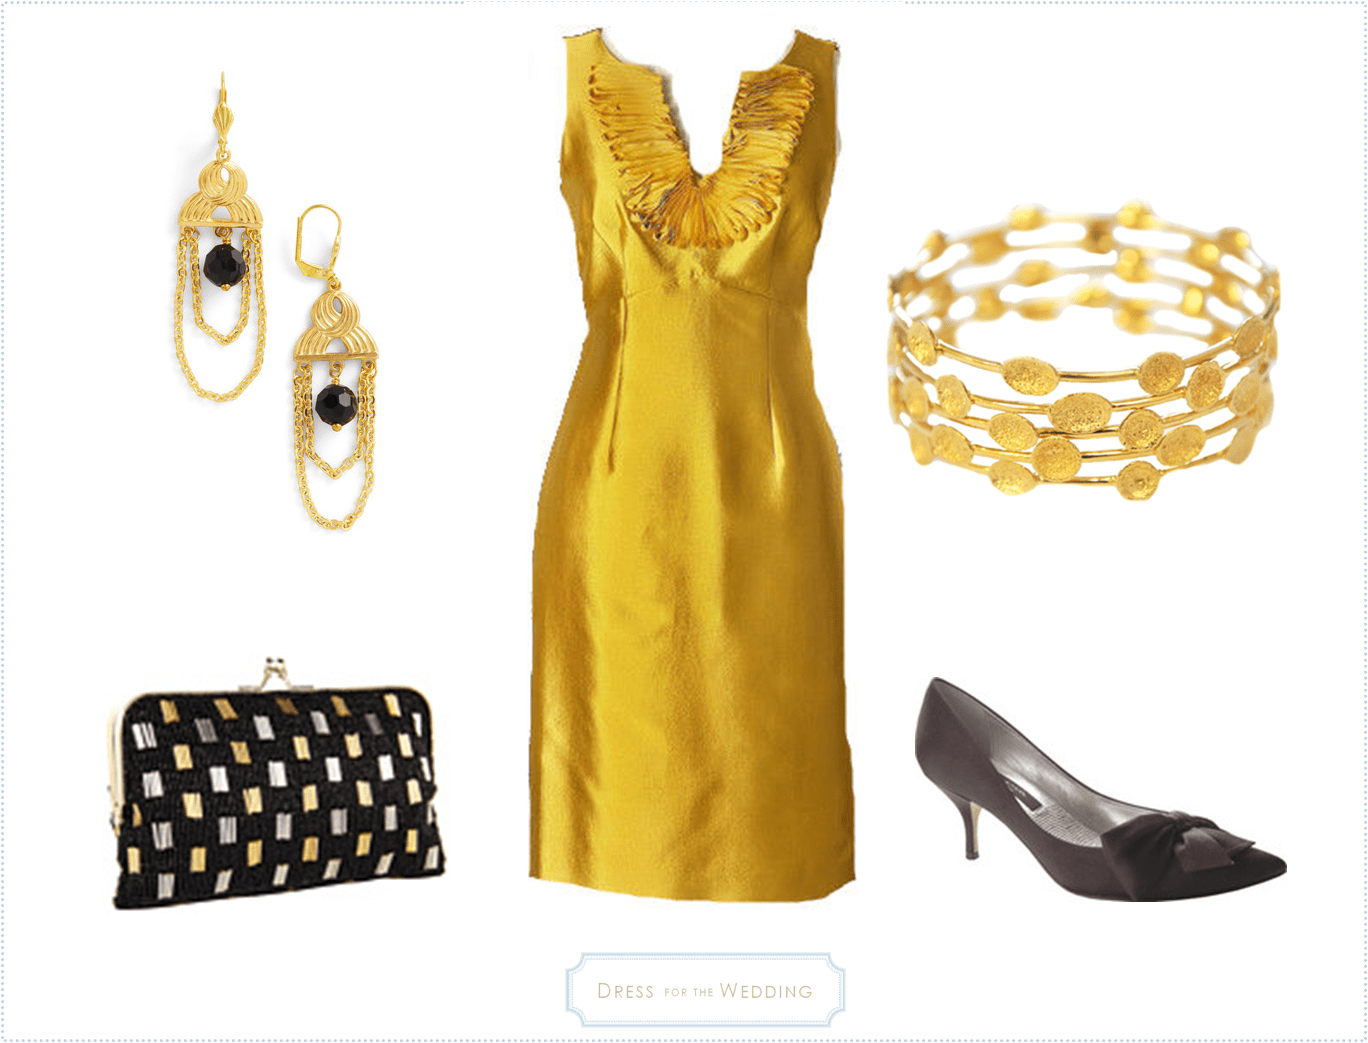 Dresses for a november wedding guest post part 3 dress for Golden dresses for a wedding